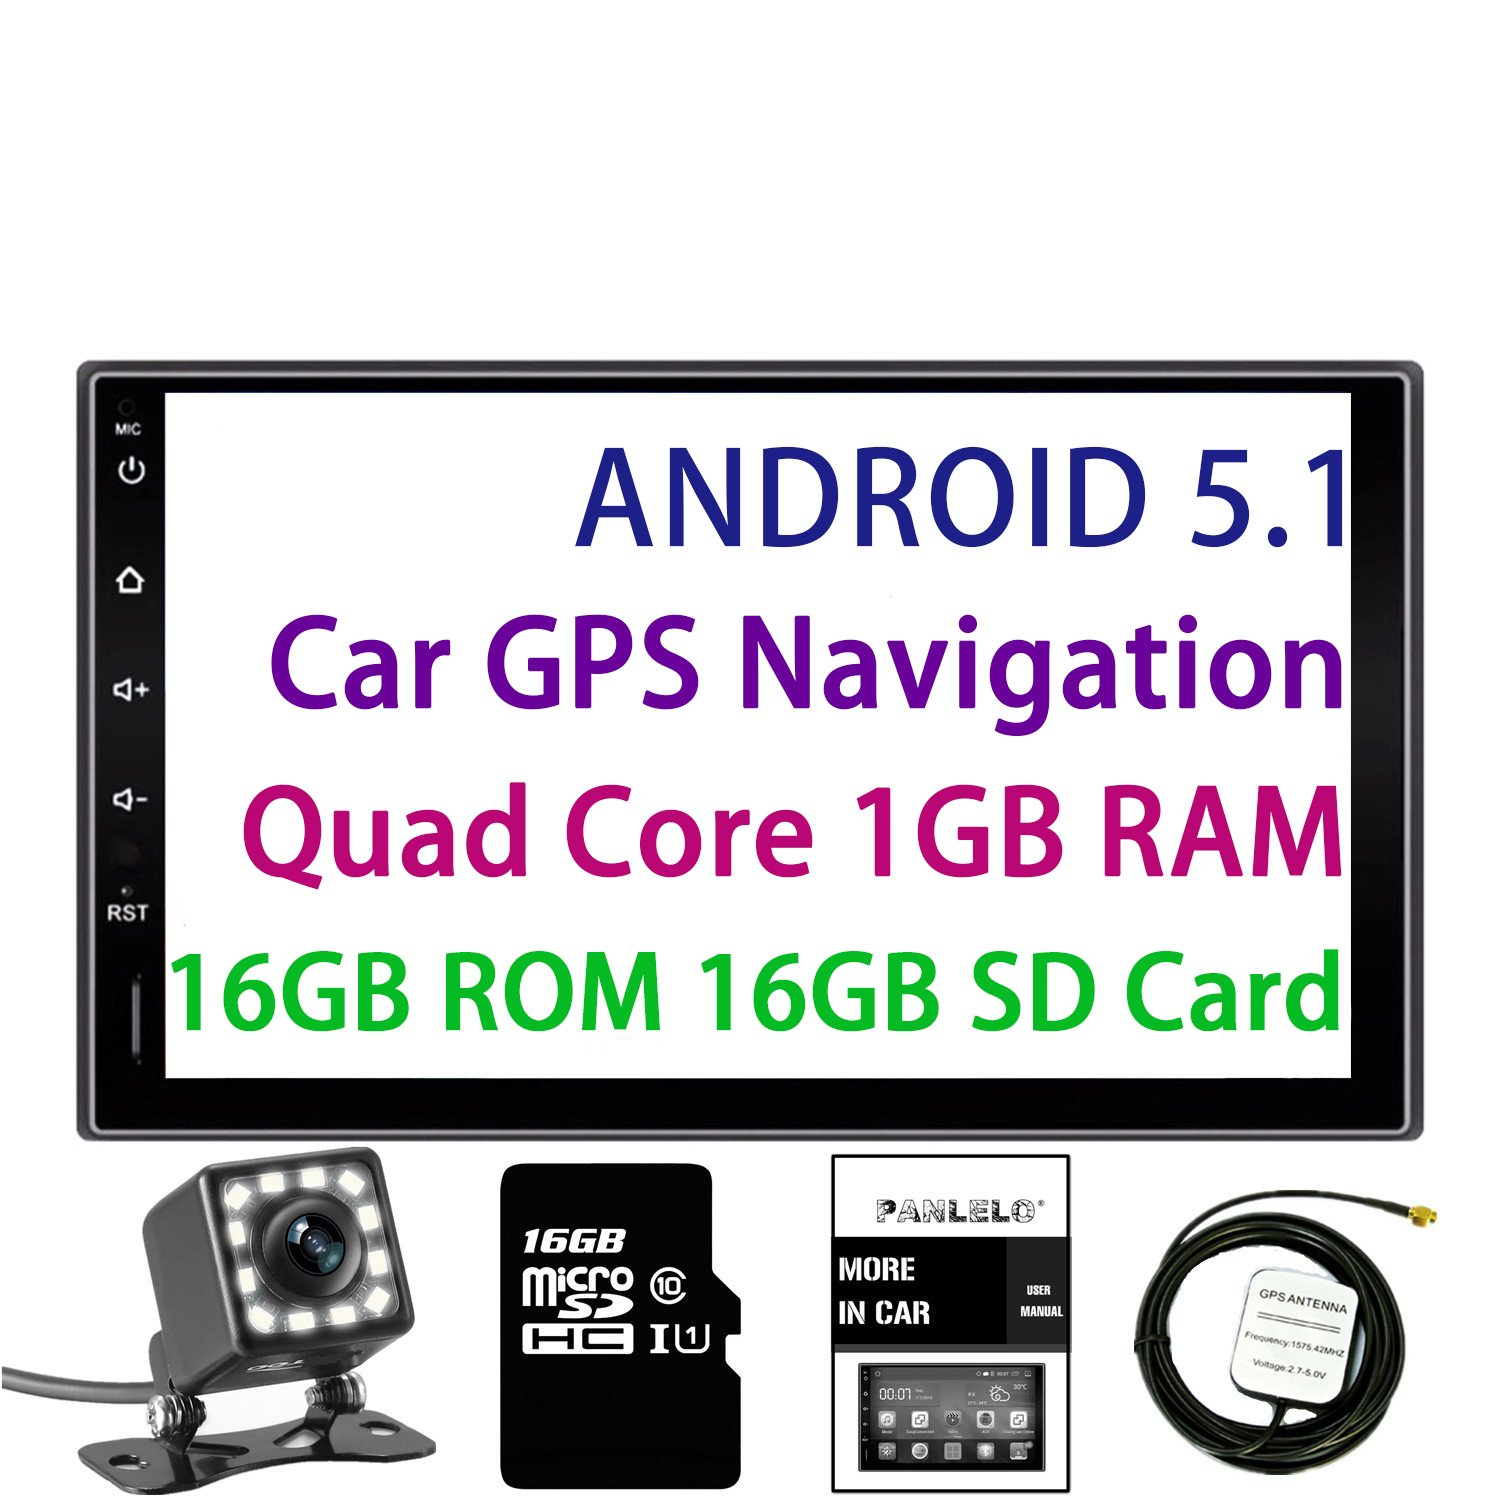 Panlelo Android 5.1 Car Stereo 7 Inch 2 Din Head Unit Quad Core RAM 1G ROM 16G GPS Navigation Auto Audio Radio 1080P Video Player Built in Wi-Fi BT AM/FM/RDS Steering Wheel Control by Panlelo